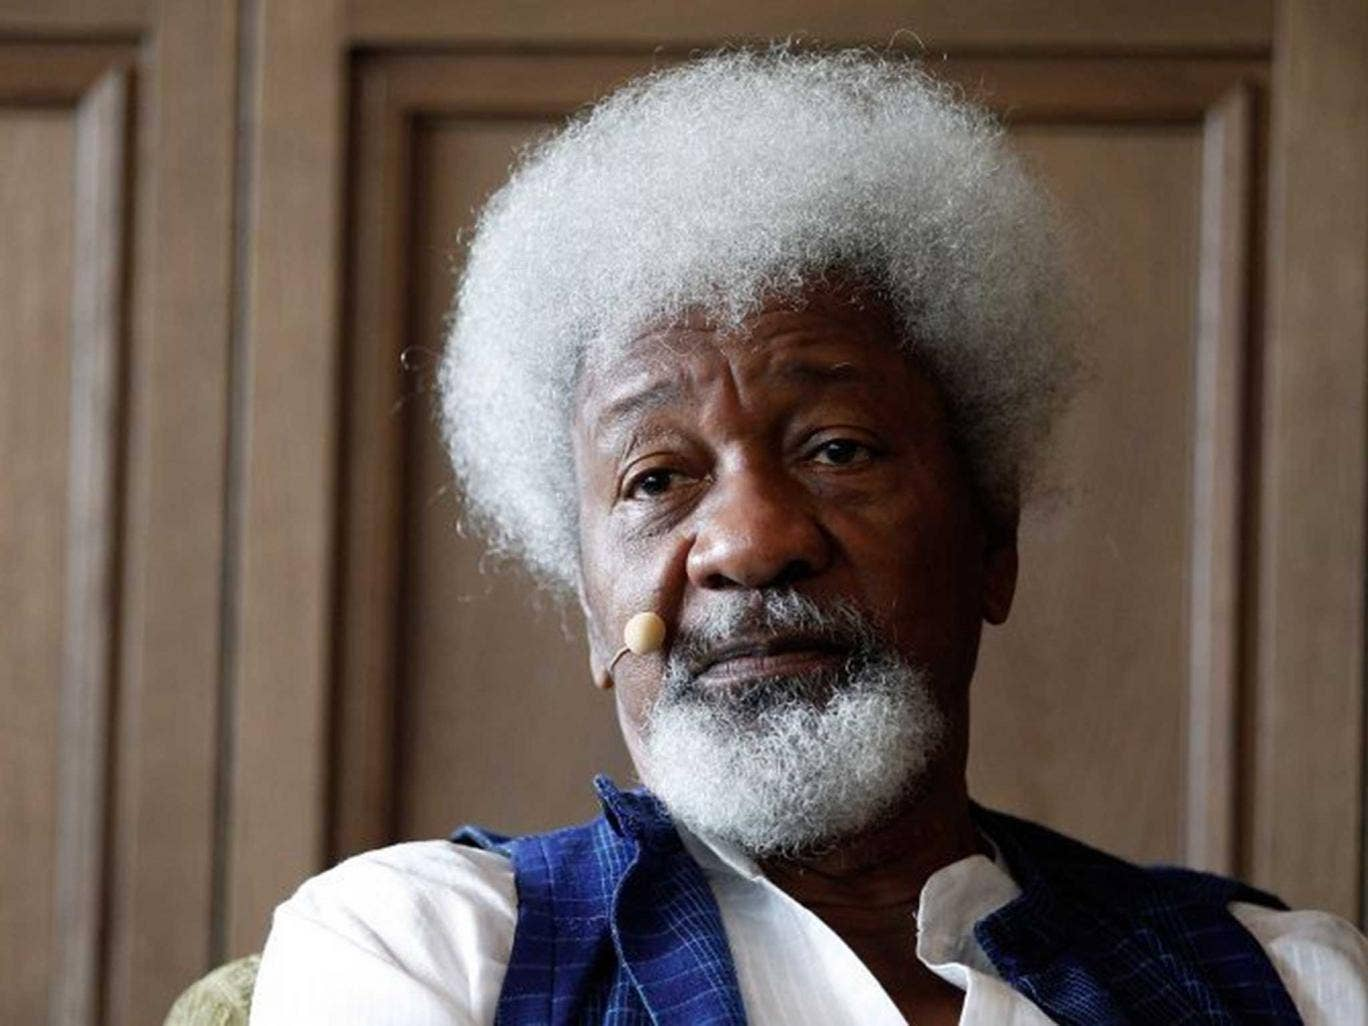 Wole Soyinka will be presented with the International Humanist Award